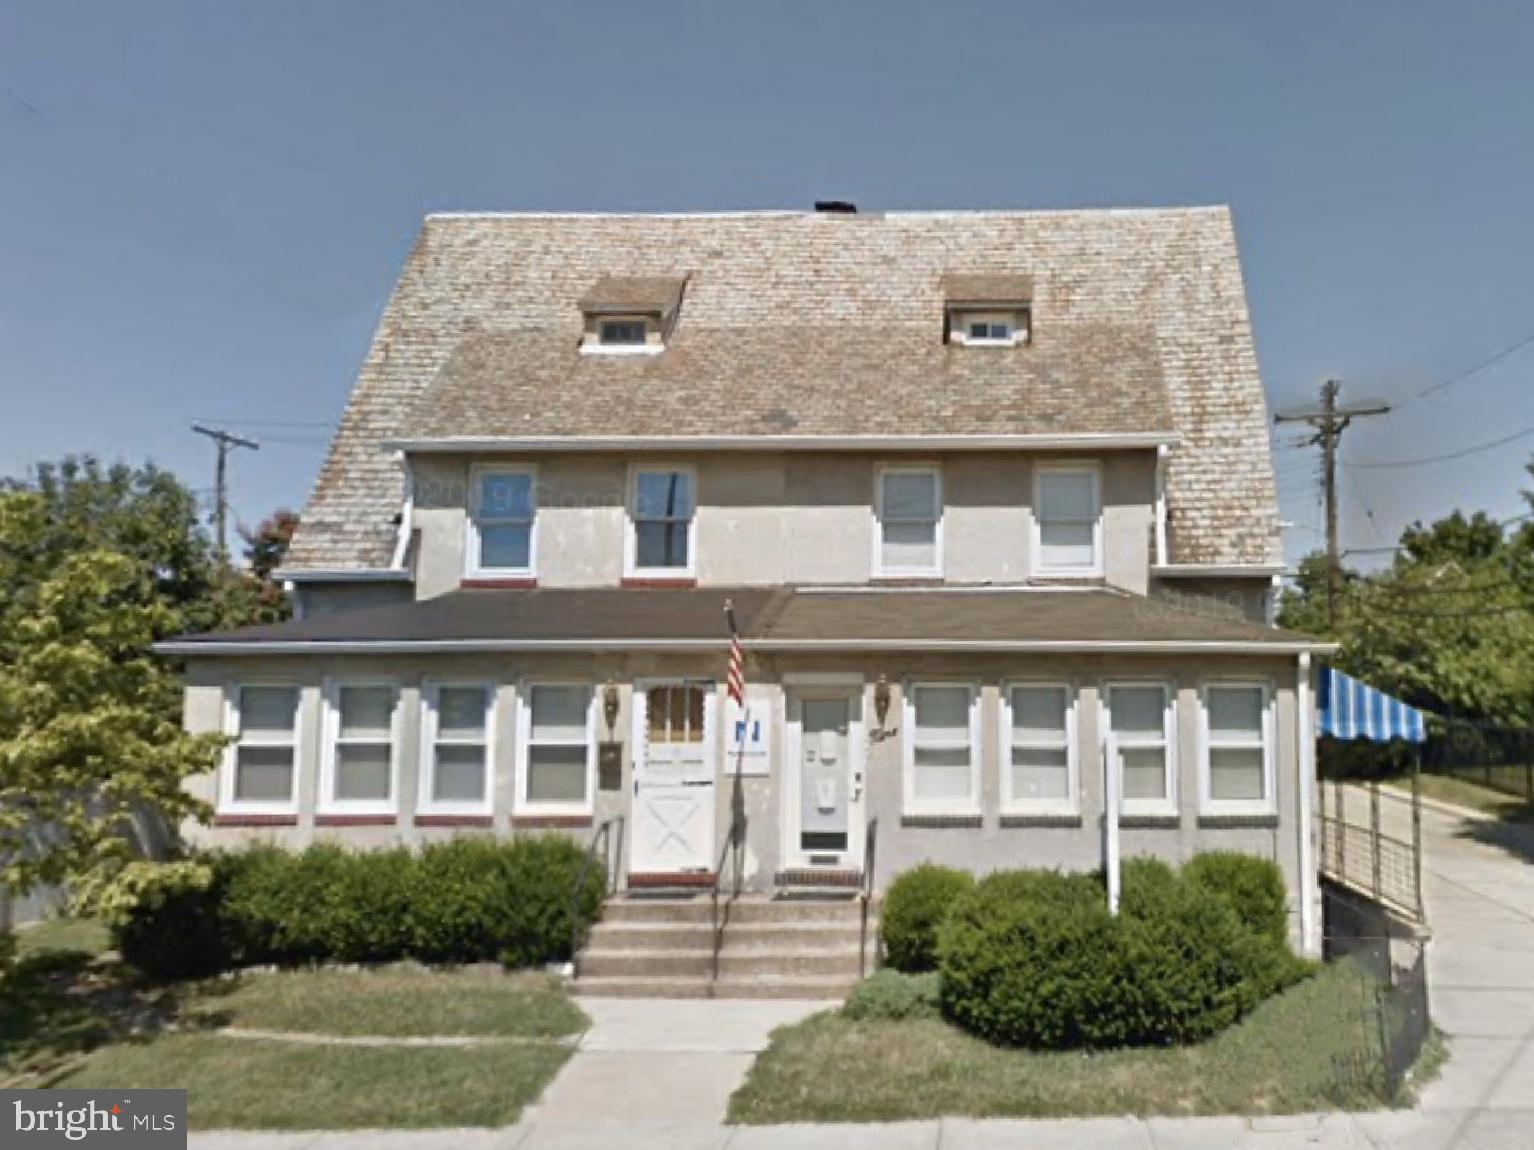 9 N Dundalk Ave and 11 N Dundalk Ave are both for sale.  Take a look at both listings.  Properties a